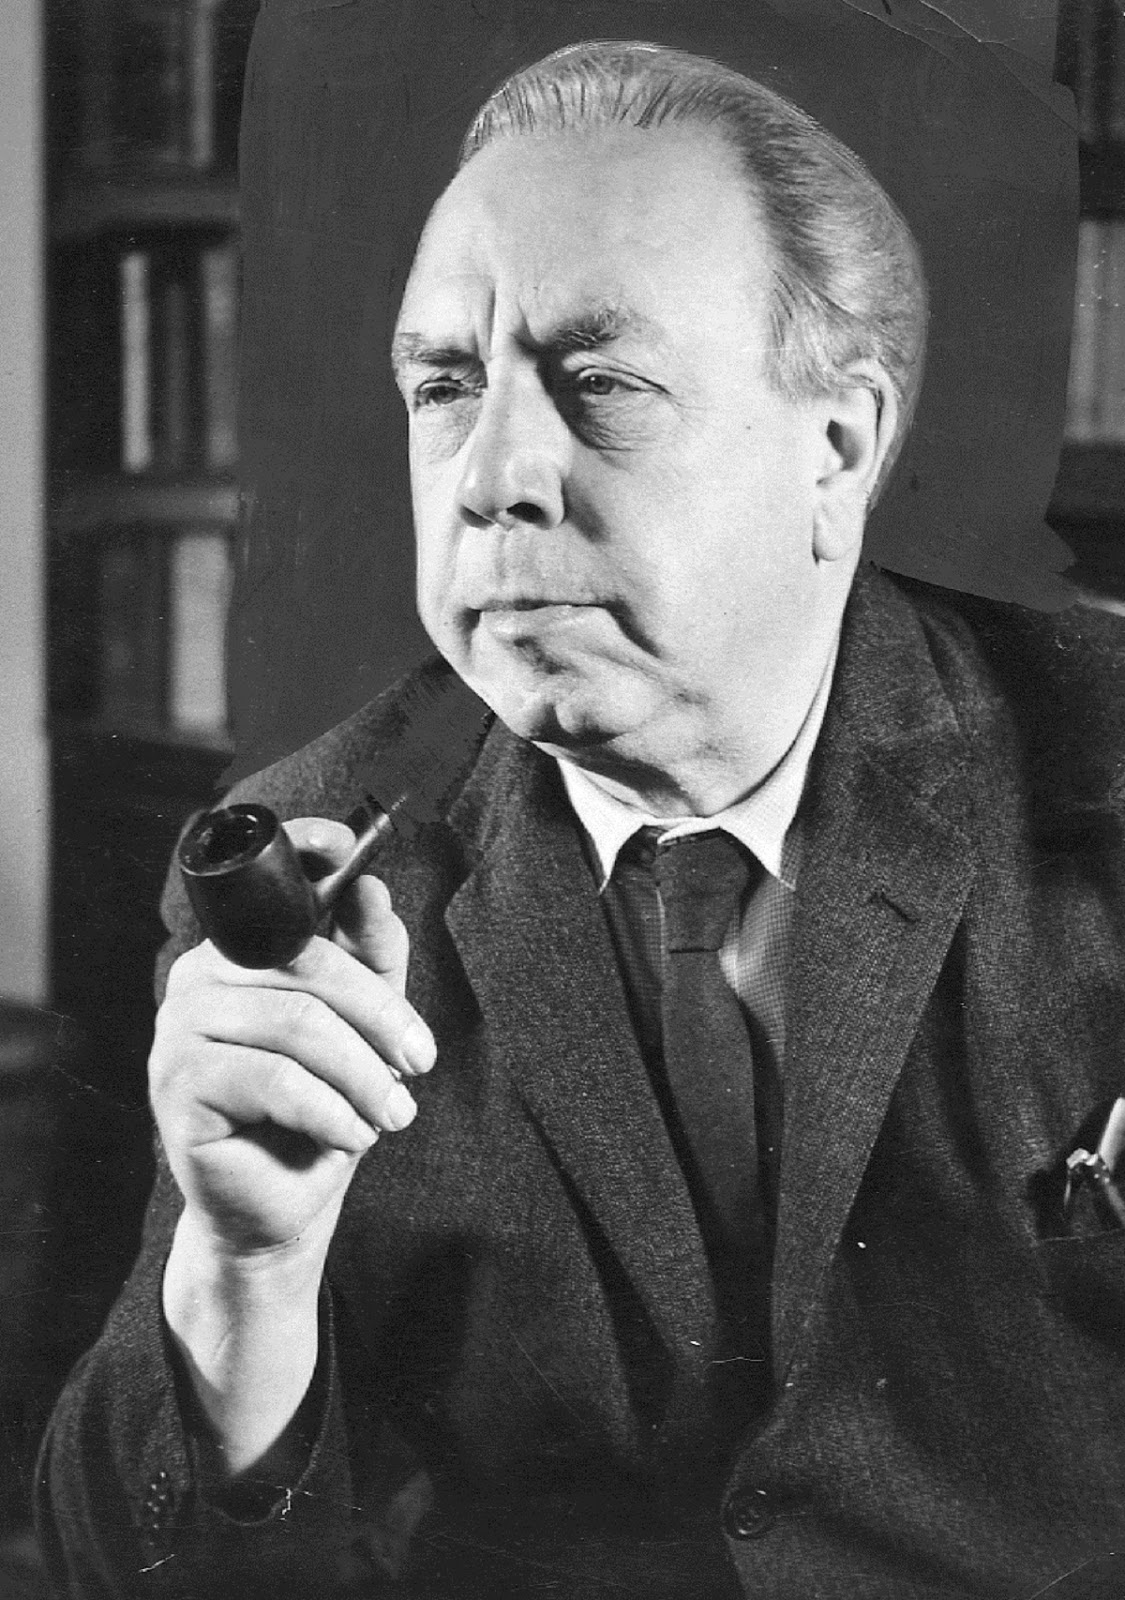 an analysis of an inspector calls by john boynton priestley 'an inspector calls' has been described as a play of social criticism what is  being criticised john boynton priestley was an english novelist, playwright a.